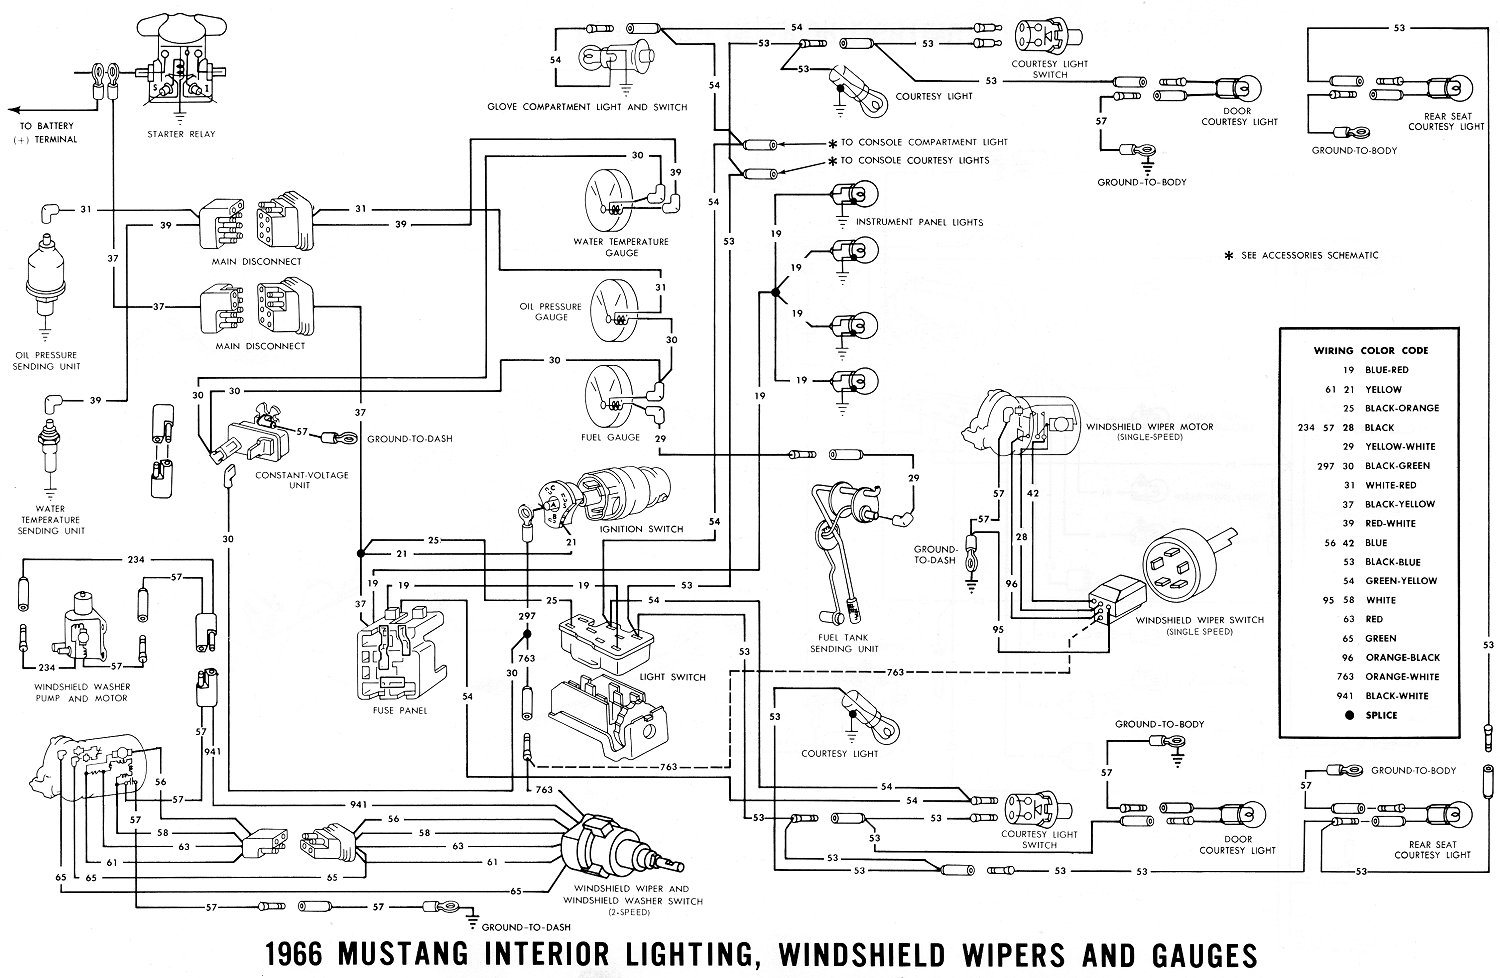 221942 1966 Mustang Underdash Wiring Problems Can You Identify These Plugs on 1999 mercury cougar fuse box diagram